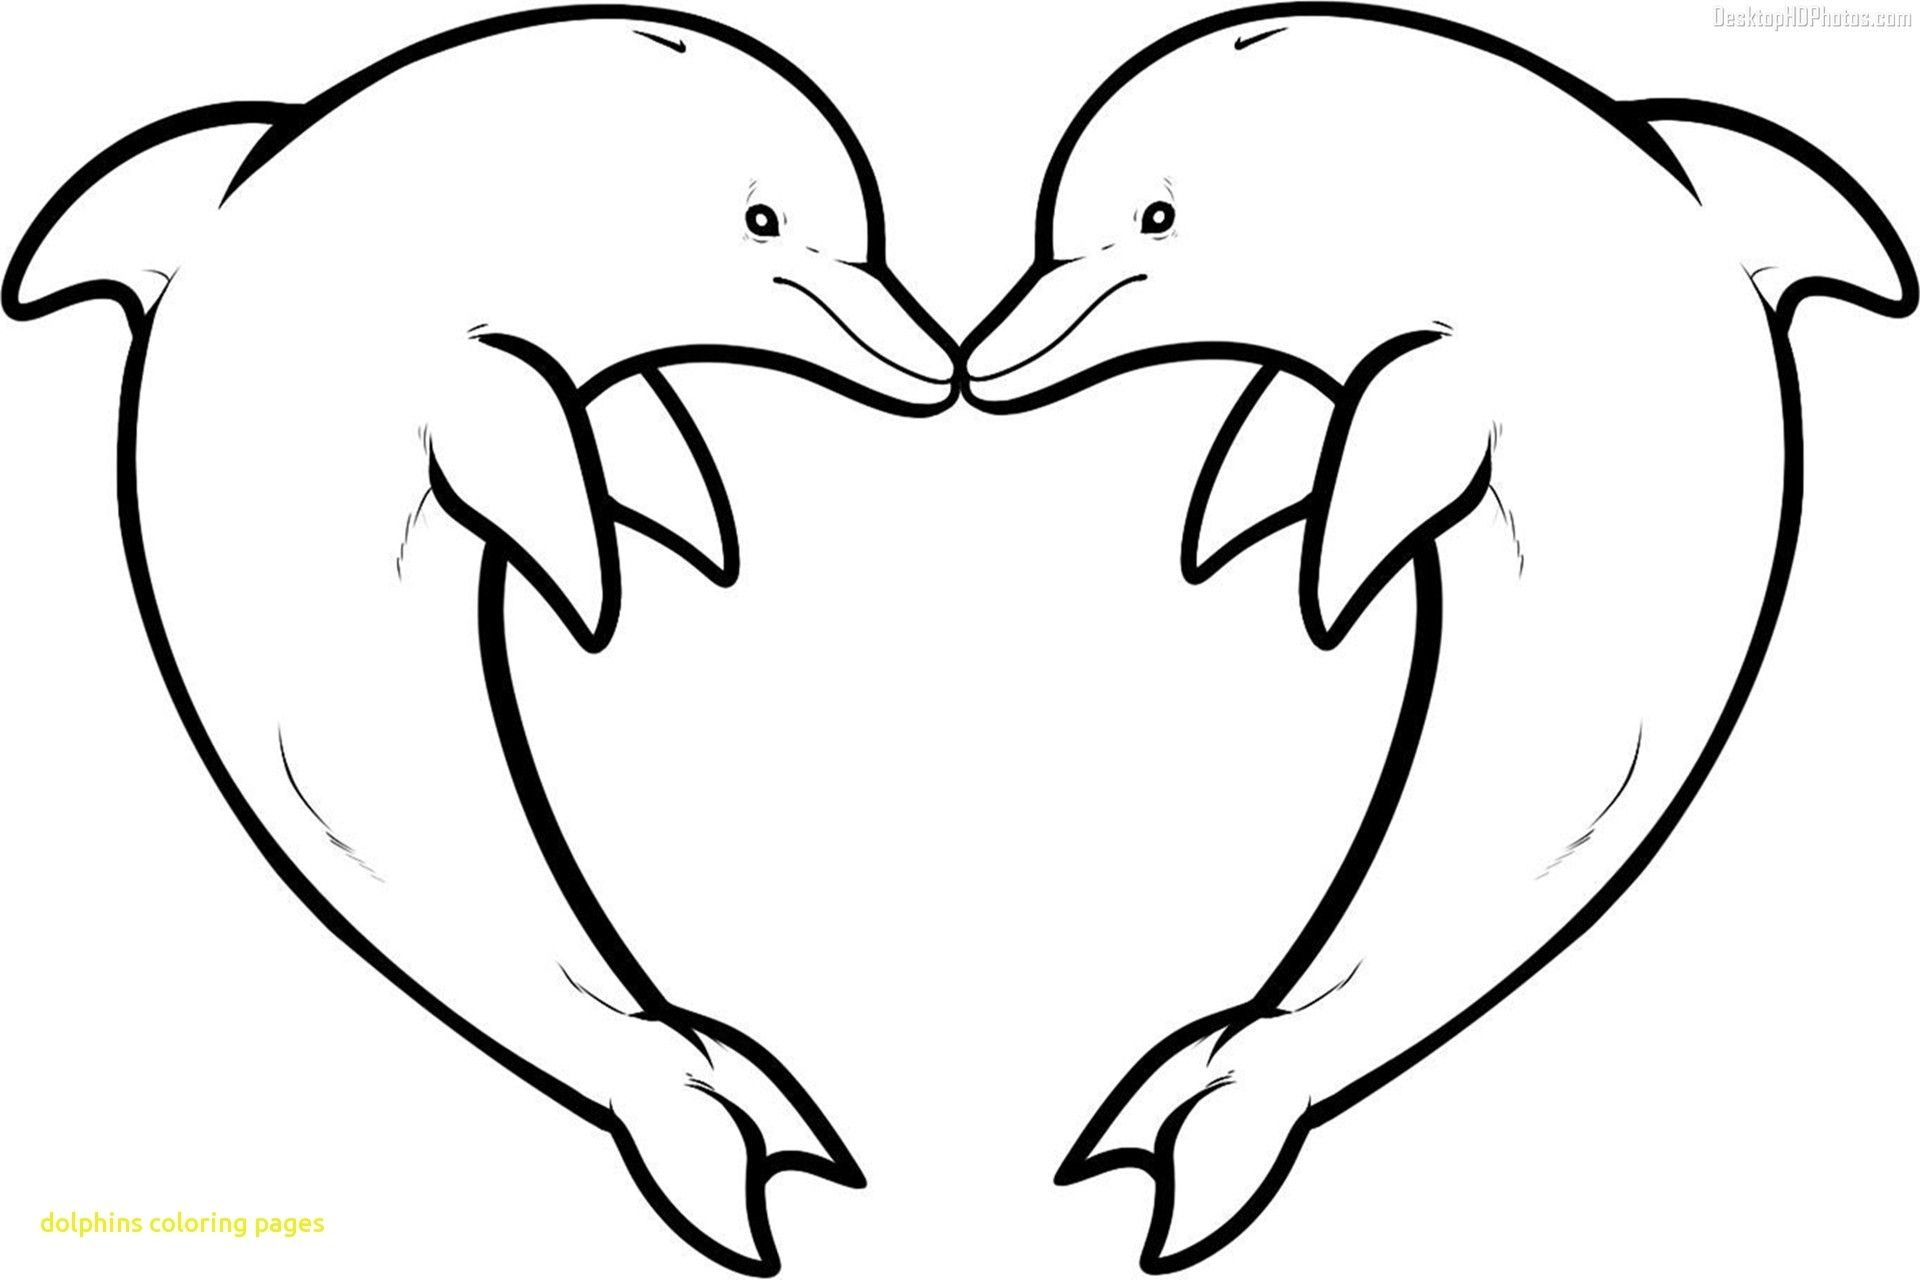 cute hard dolphin coloring pages dolphins happy dolphin swimming coloring page coloring dolphin hard pages cute